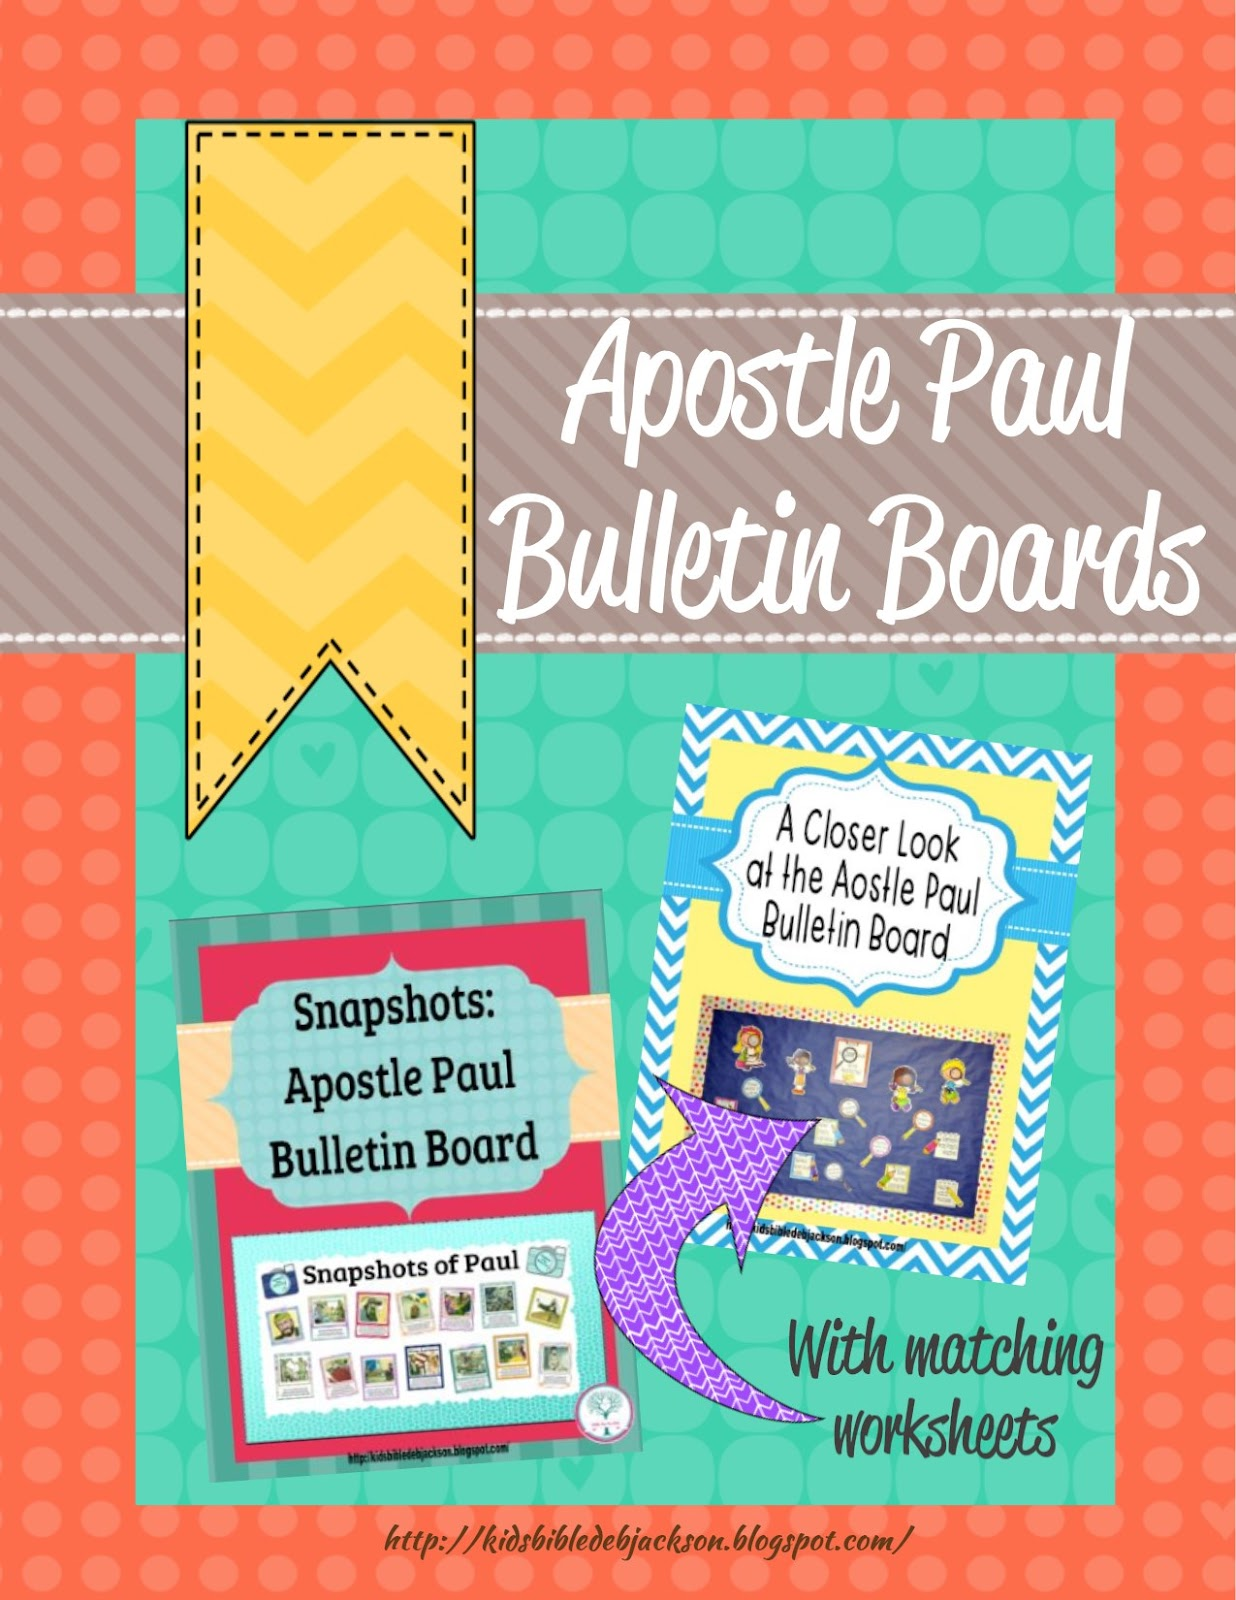 There are two bulletin boards for the apostle paul in thispost they